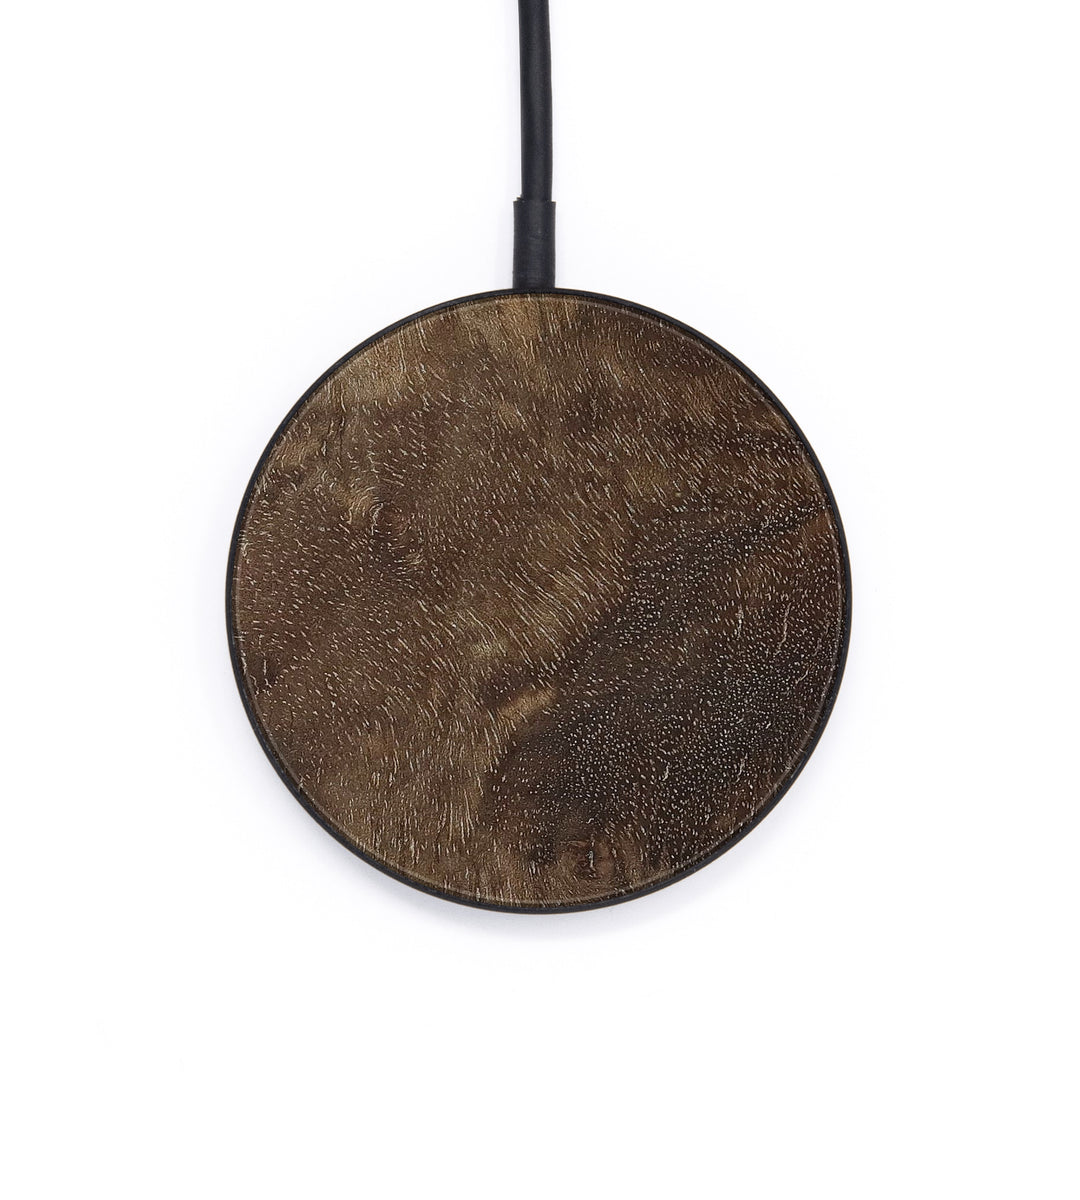 Circle Burl Wood Wireless Charger - Lydie (Walnut Burl, 404850)